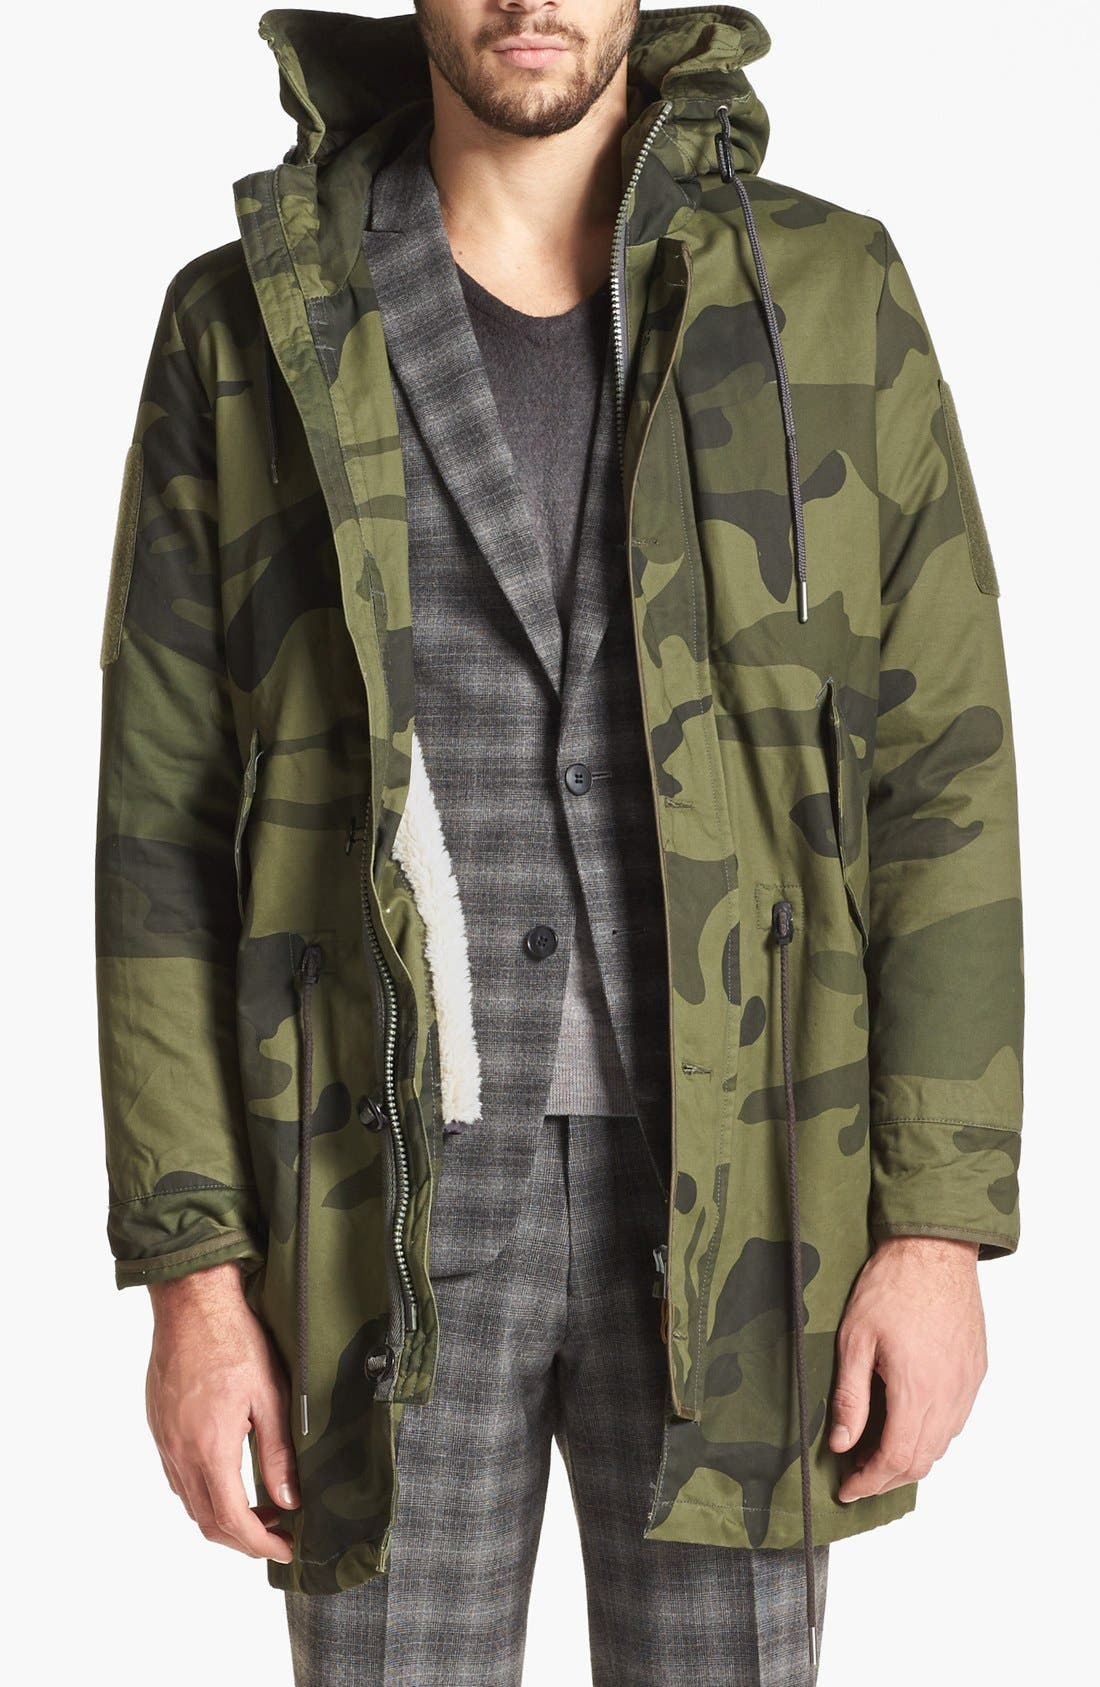 G-Star Raw 'Polar HDD' Camo Fishtail Parka | Nordstrom